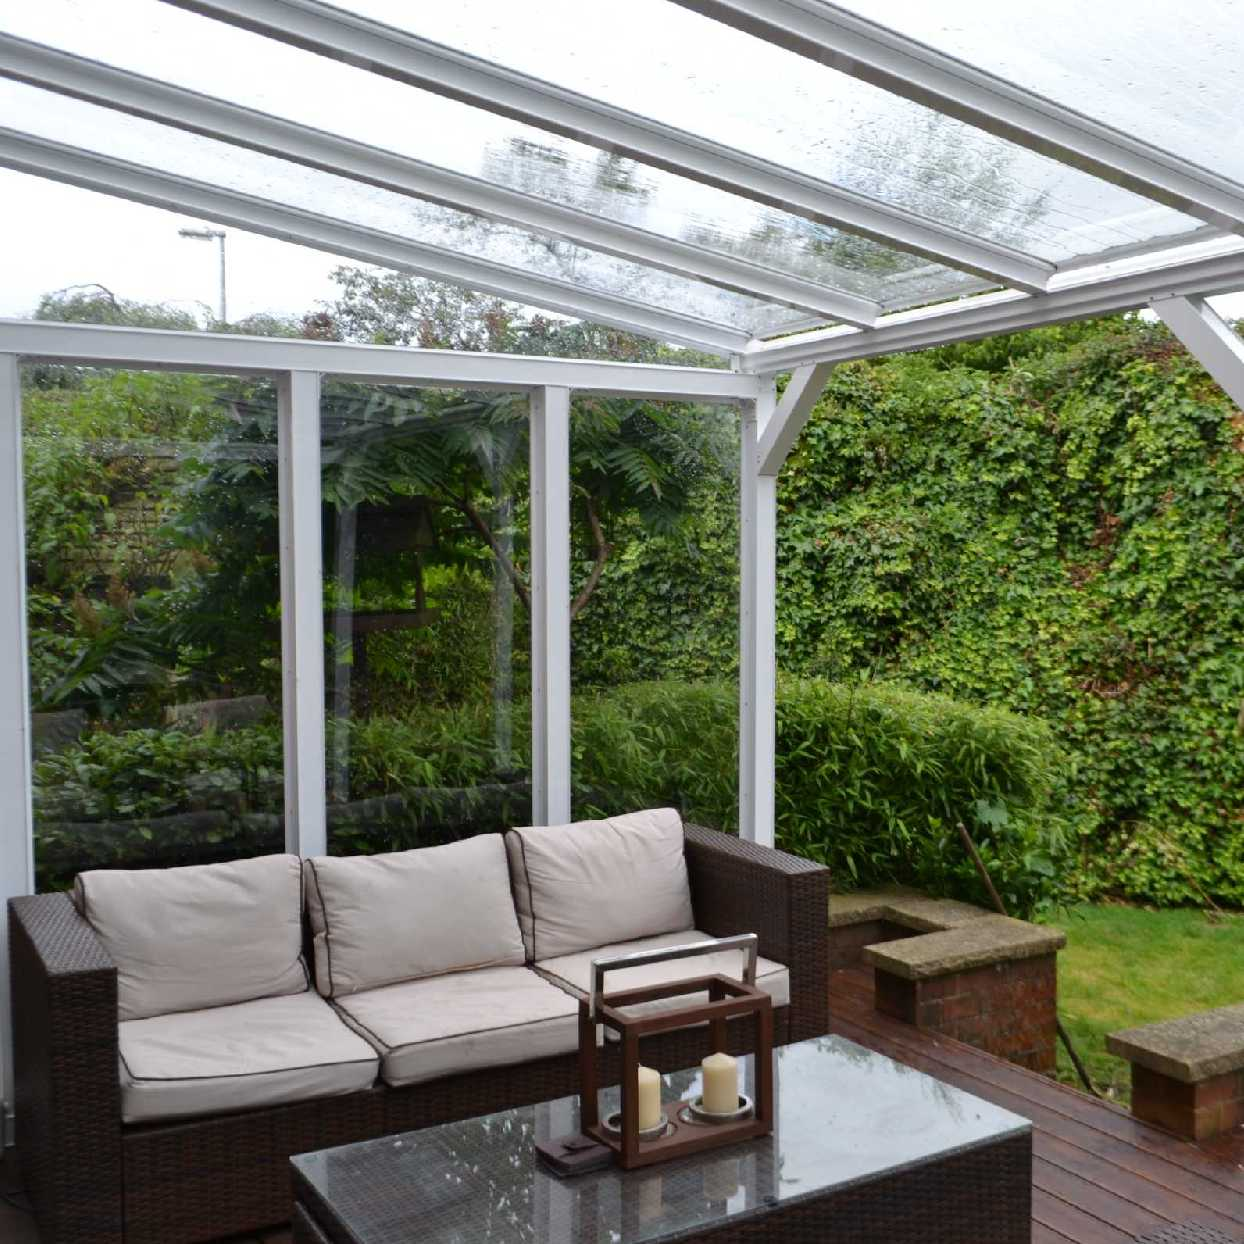 Great selection of Omega Smart White Lean-To Canopy with 16mm Polycarbonate Glazing - 7.4m (W) x 4.5m (P), (4) Supporting Posts